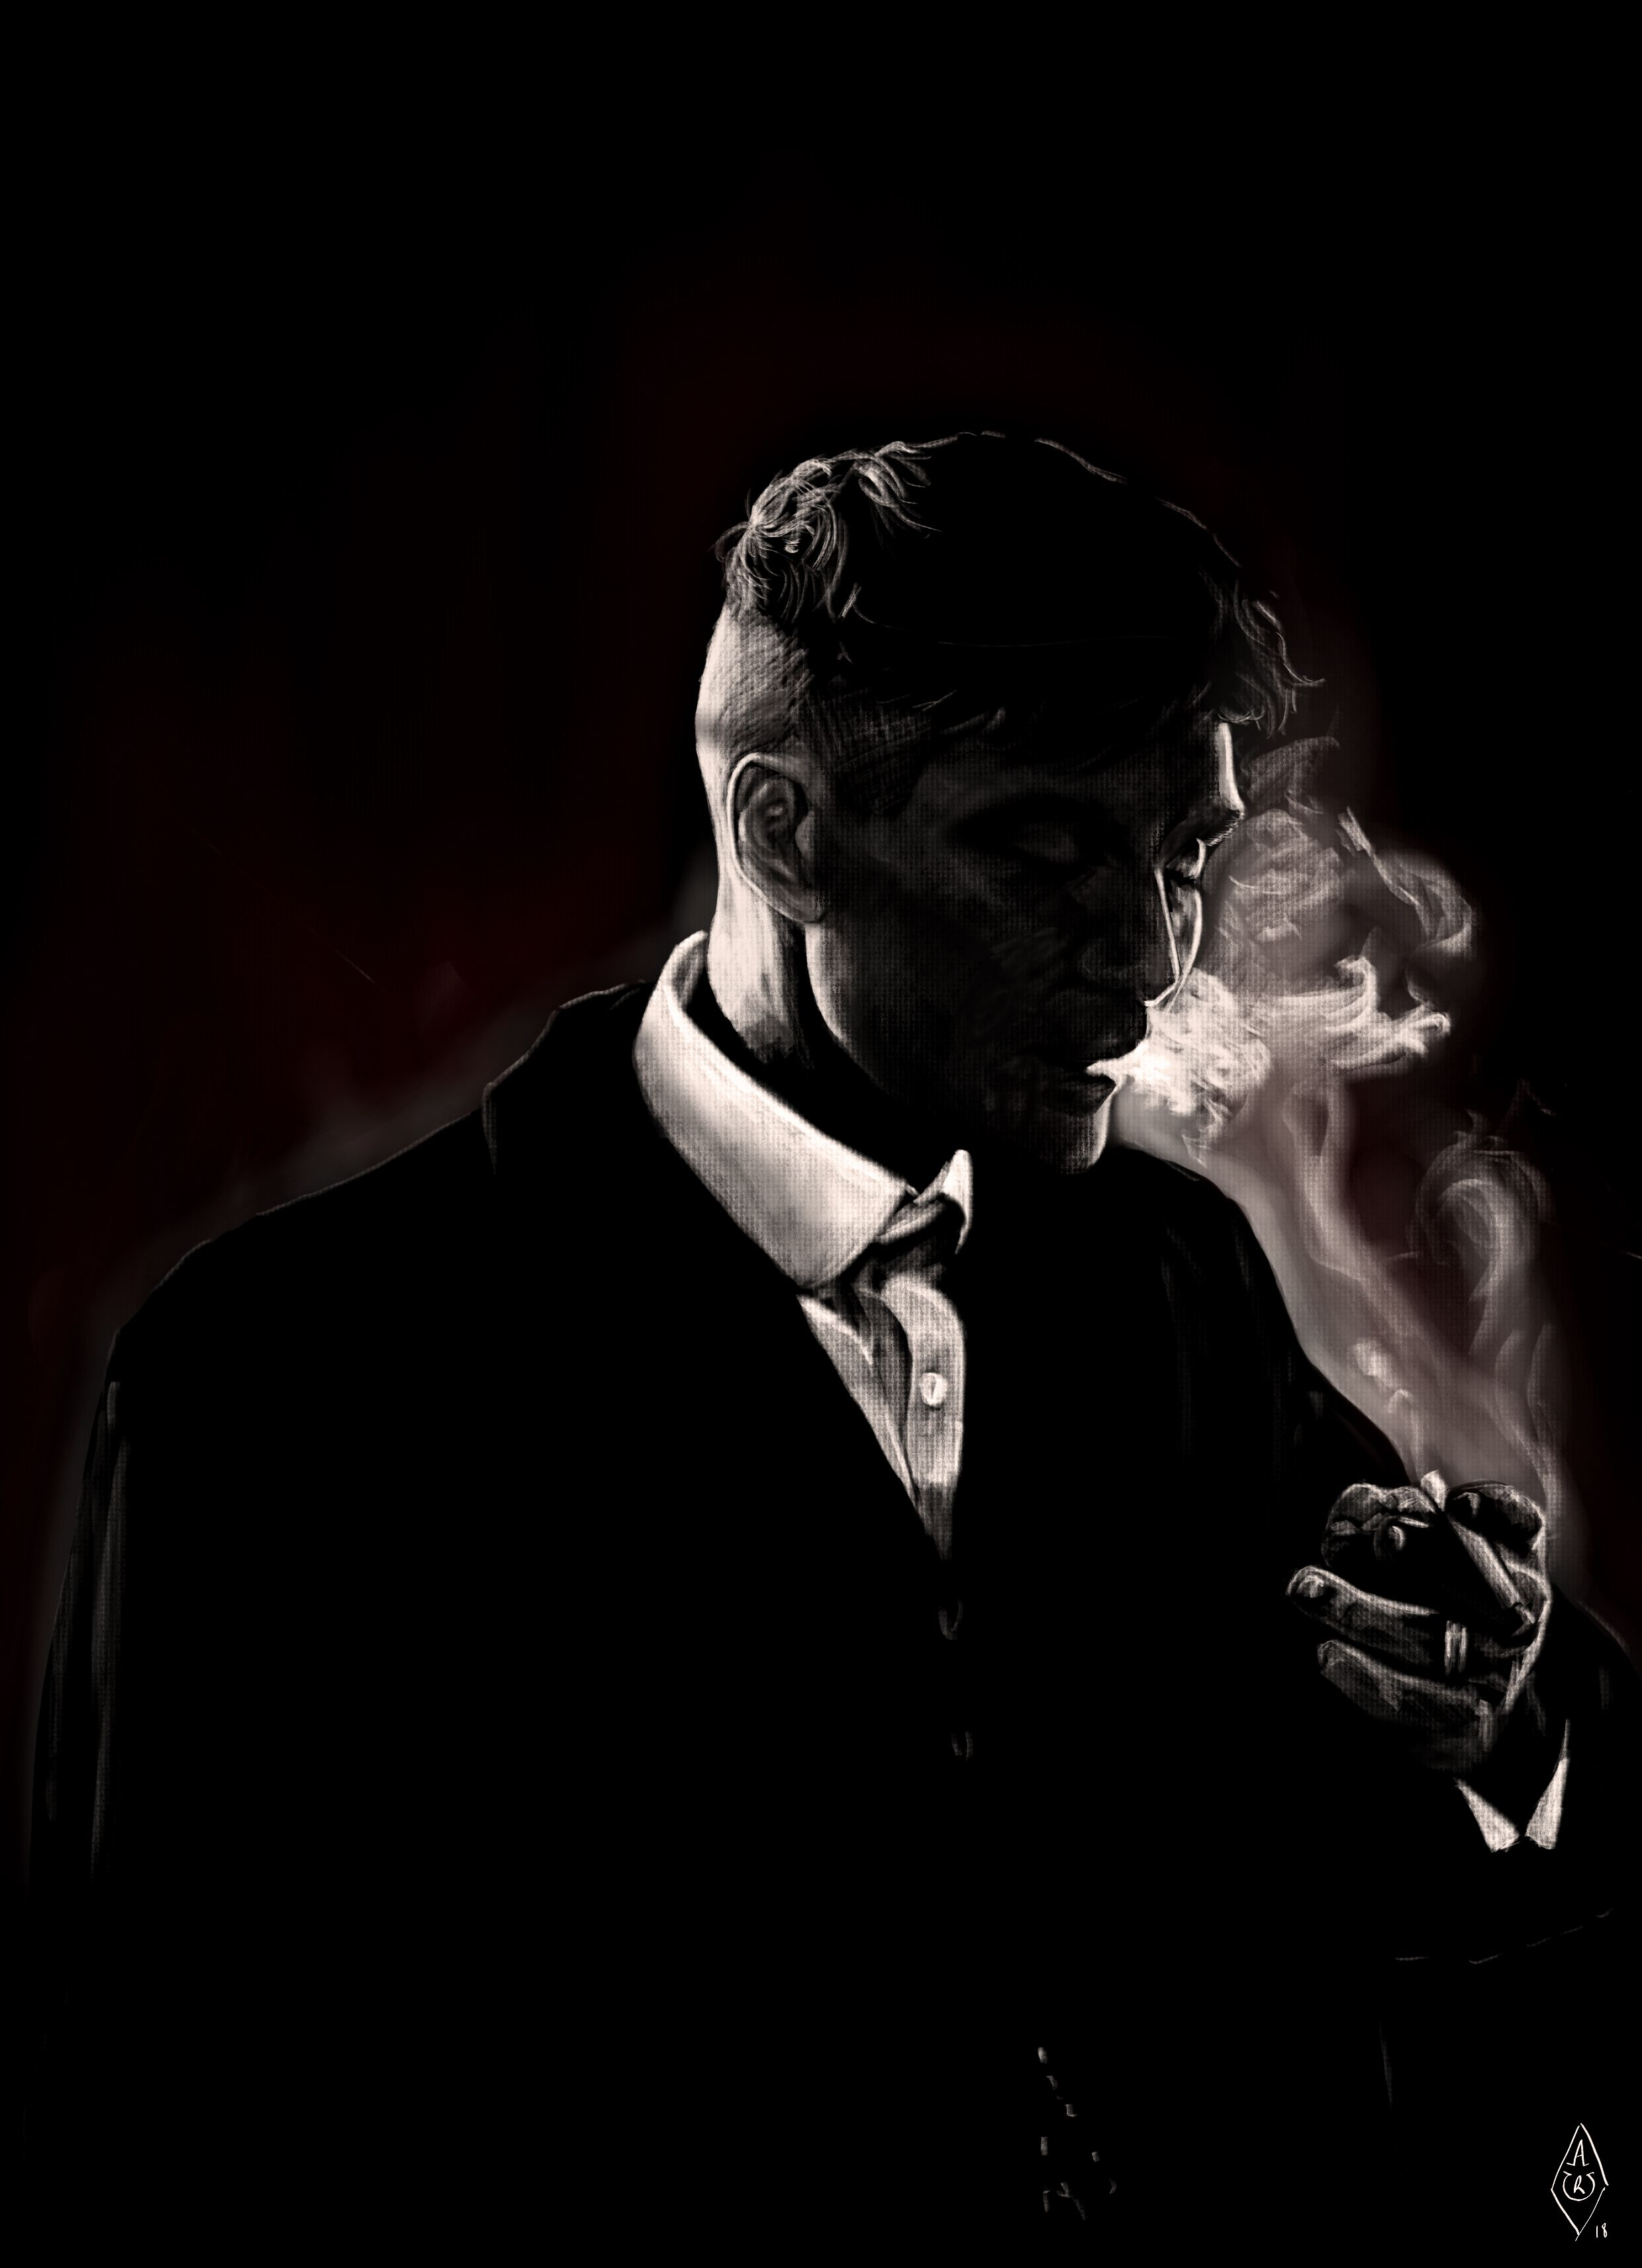 Portrait of Thomas Shelby from Peaky Blinders. Drawn with